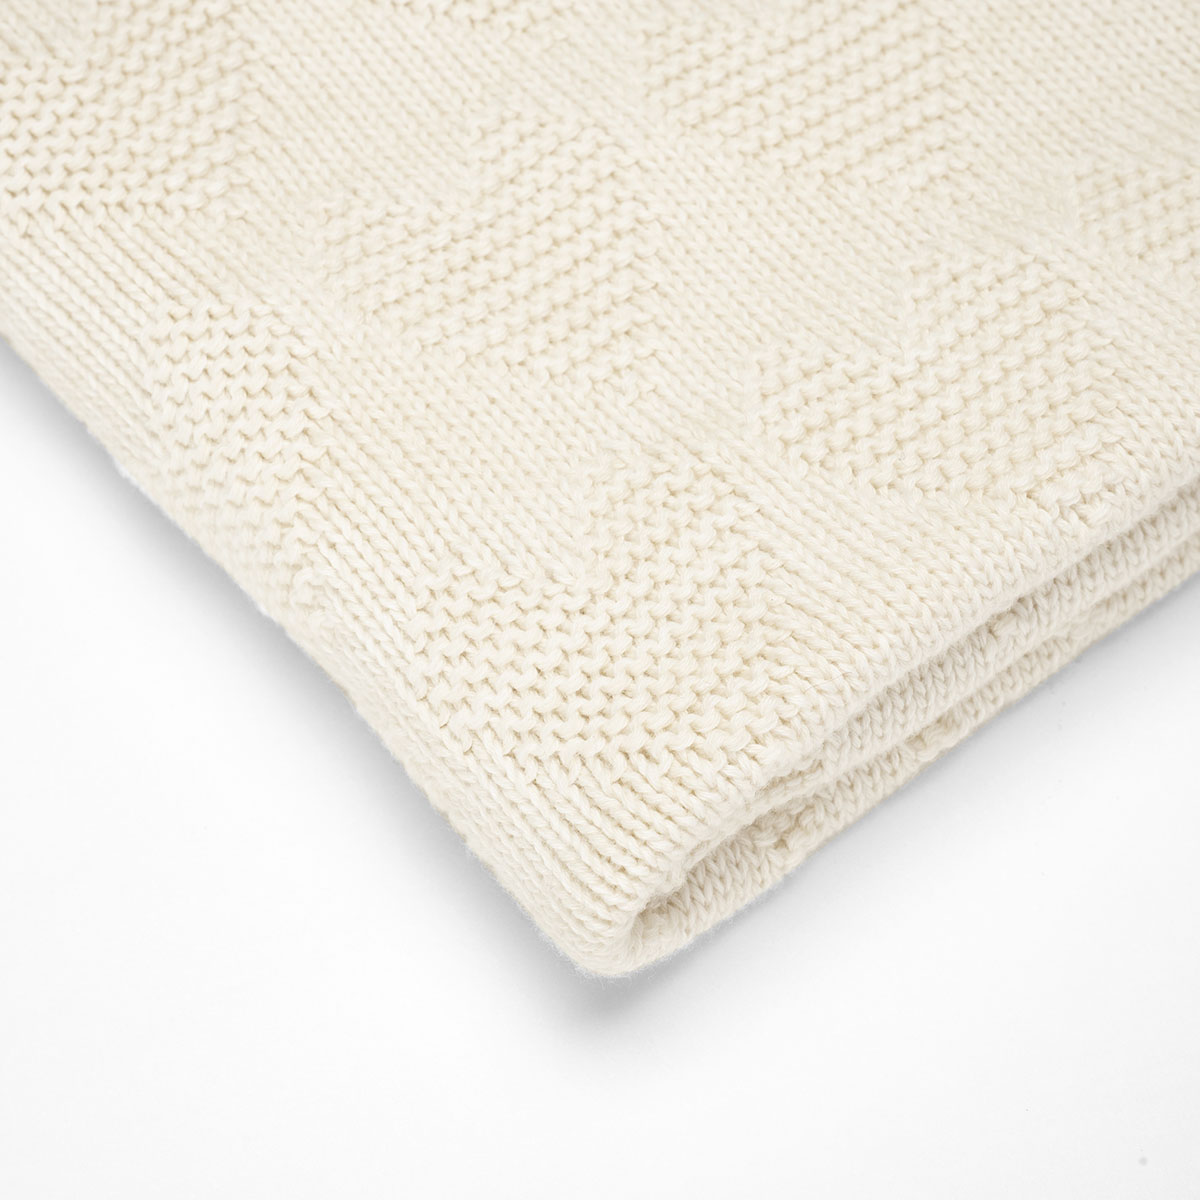 Skin to skin blanket Prima Coccola